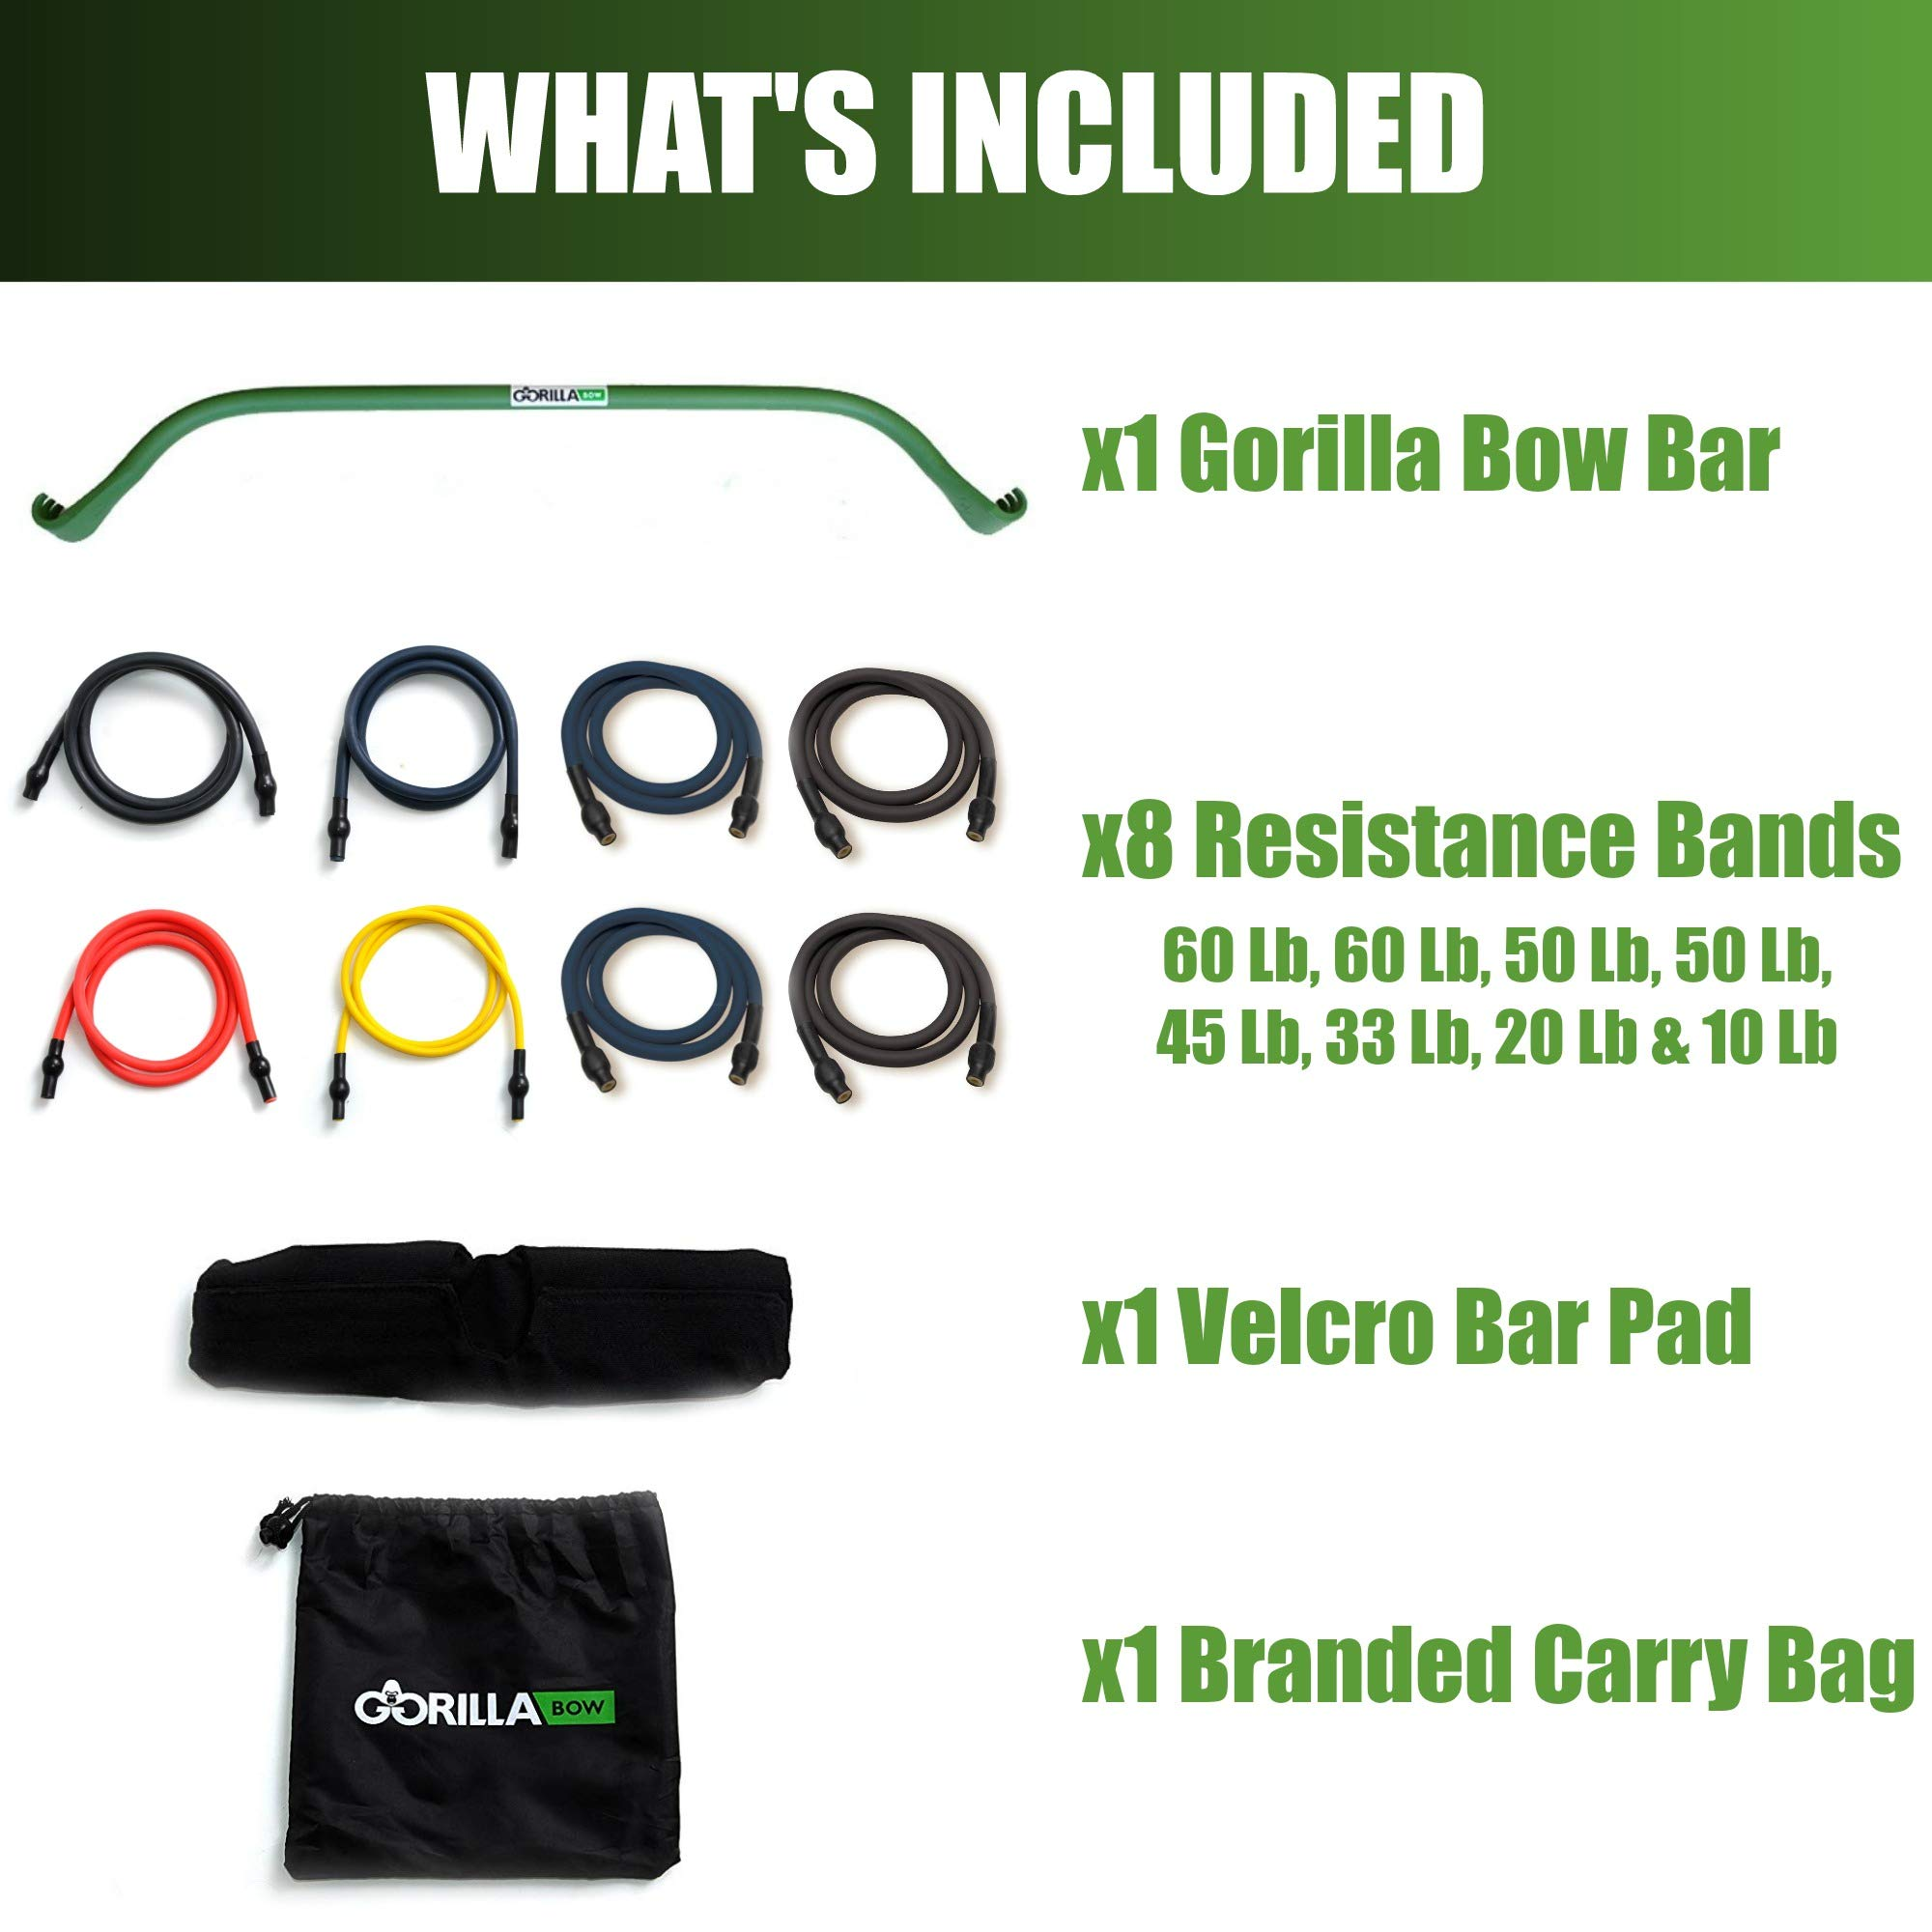 Gorilla Bow Portable Home Gym Resistance Band System | Weightlifting & HIIT Interval Training Kit | Full Body Workout Equipment (Heavy Green) by Gorilla Fitness (Image #2)